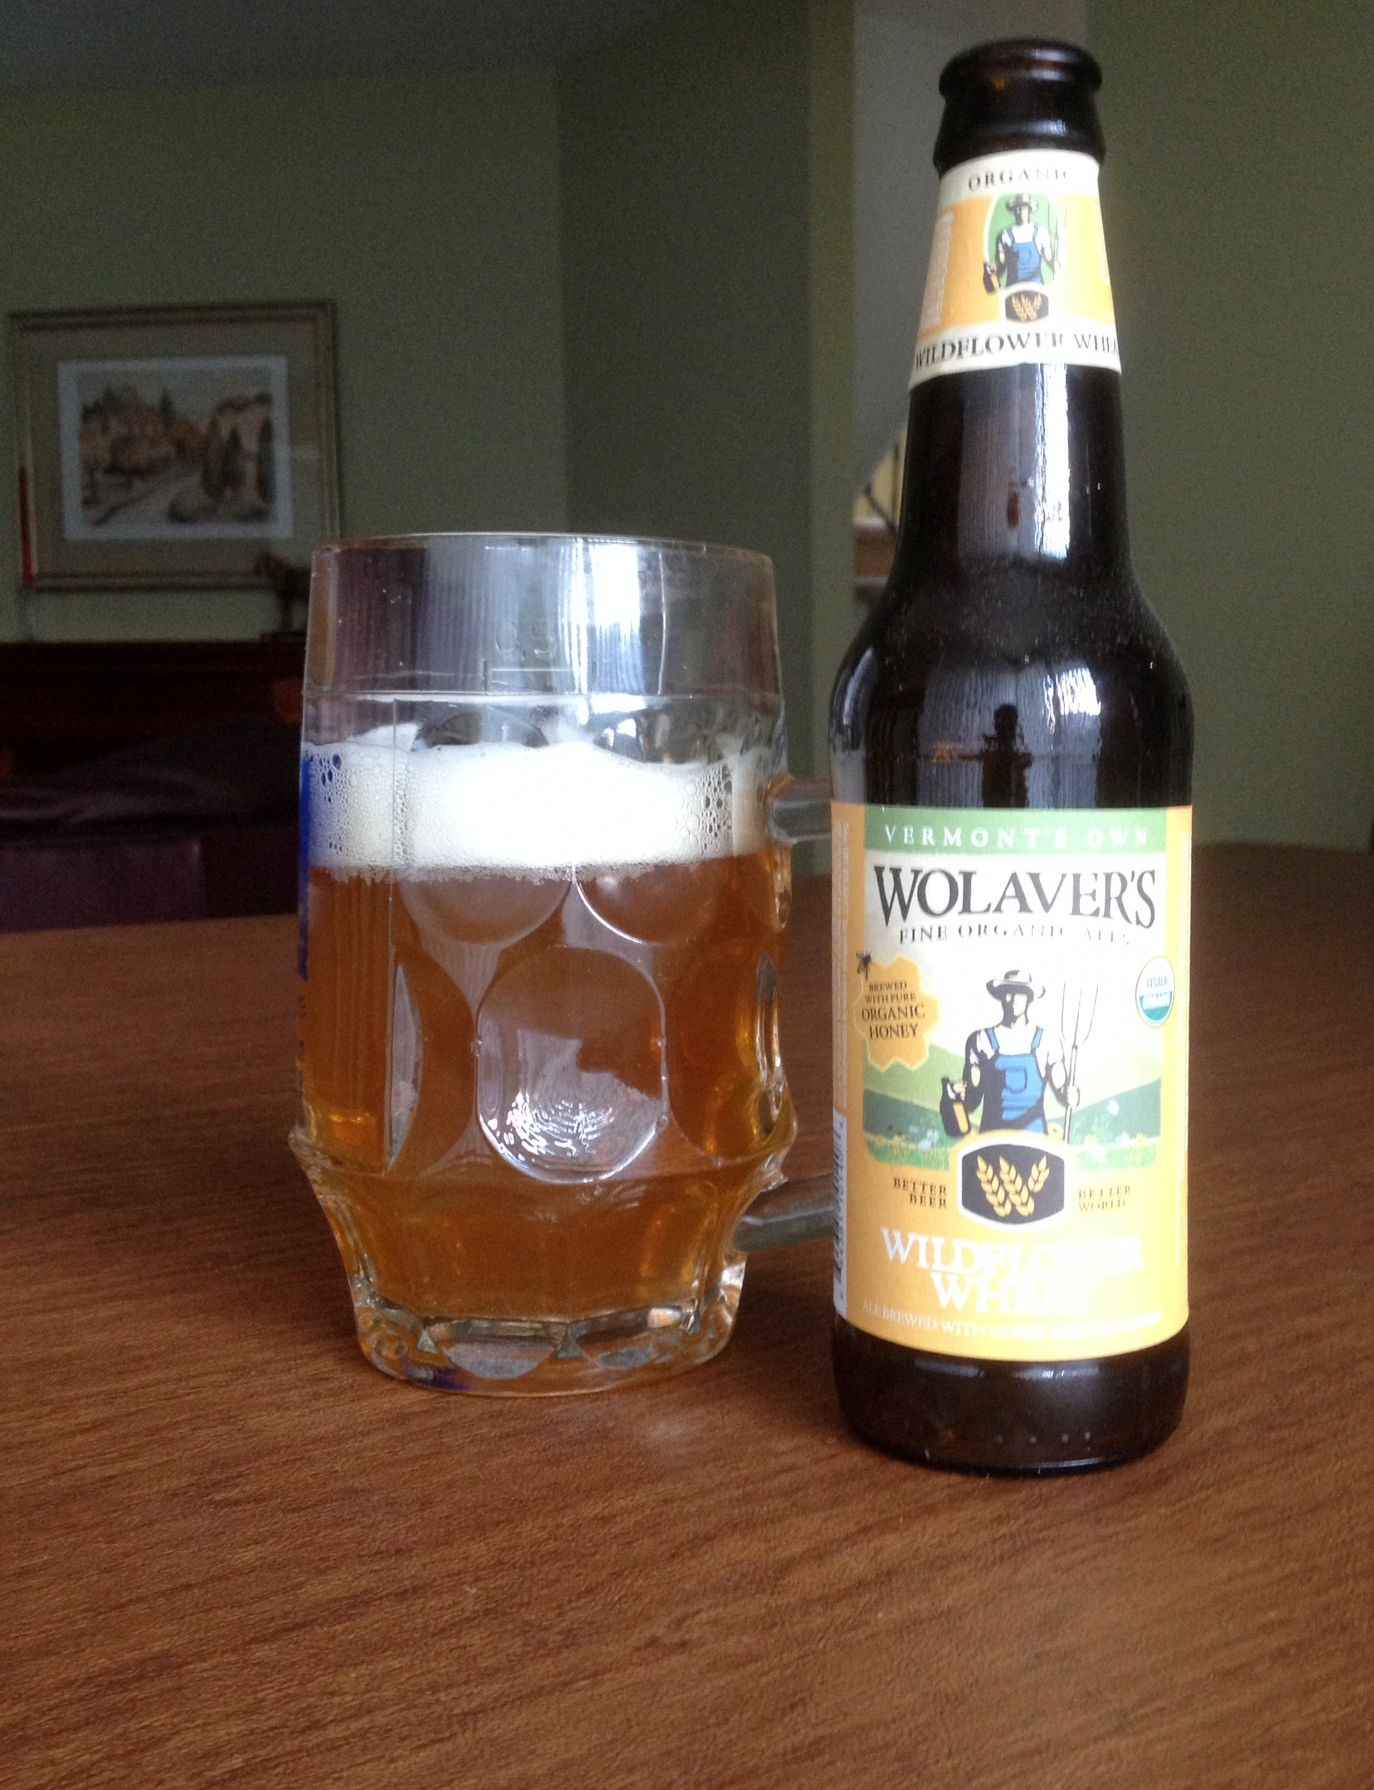 Wolavers's Wildflower Wheat: organic beer from Vermont